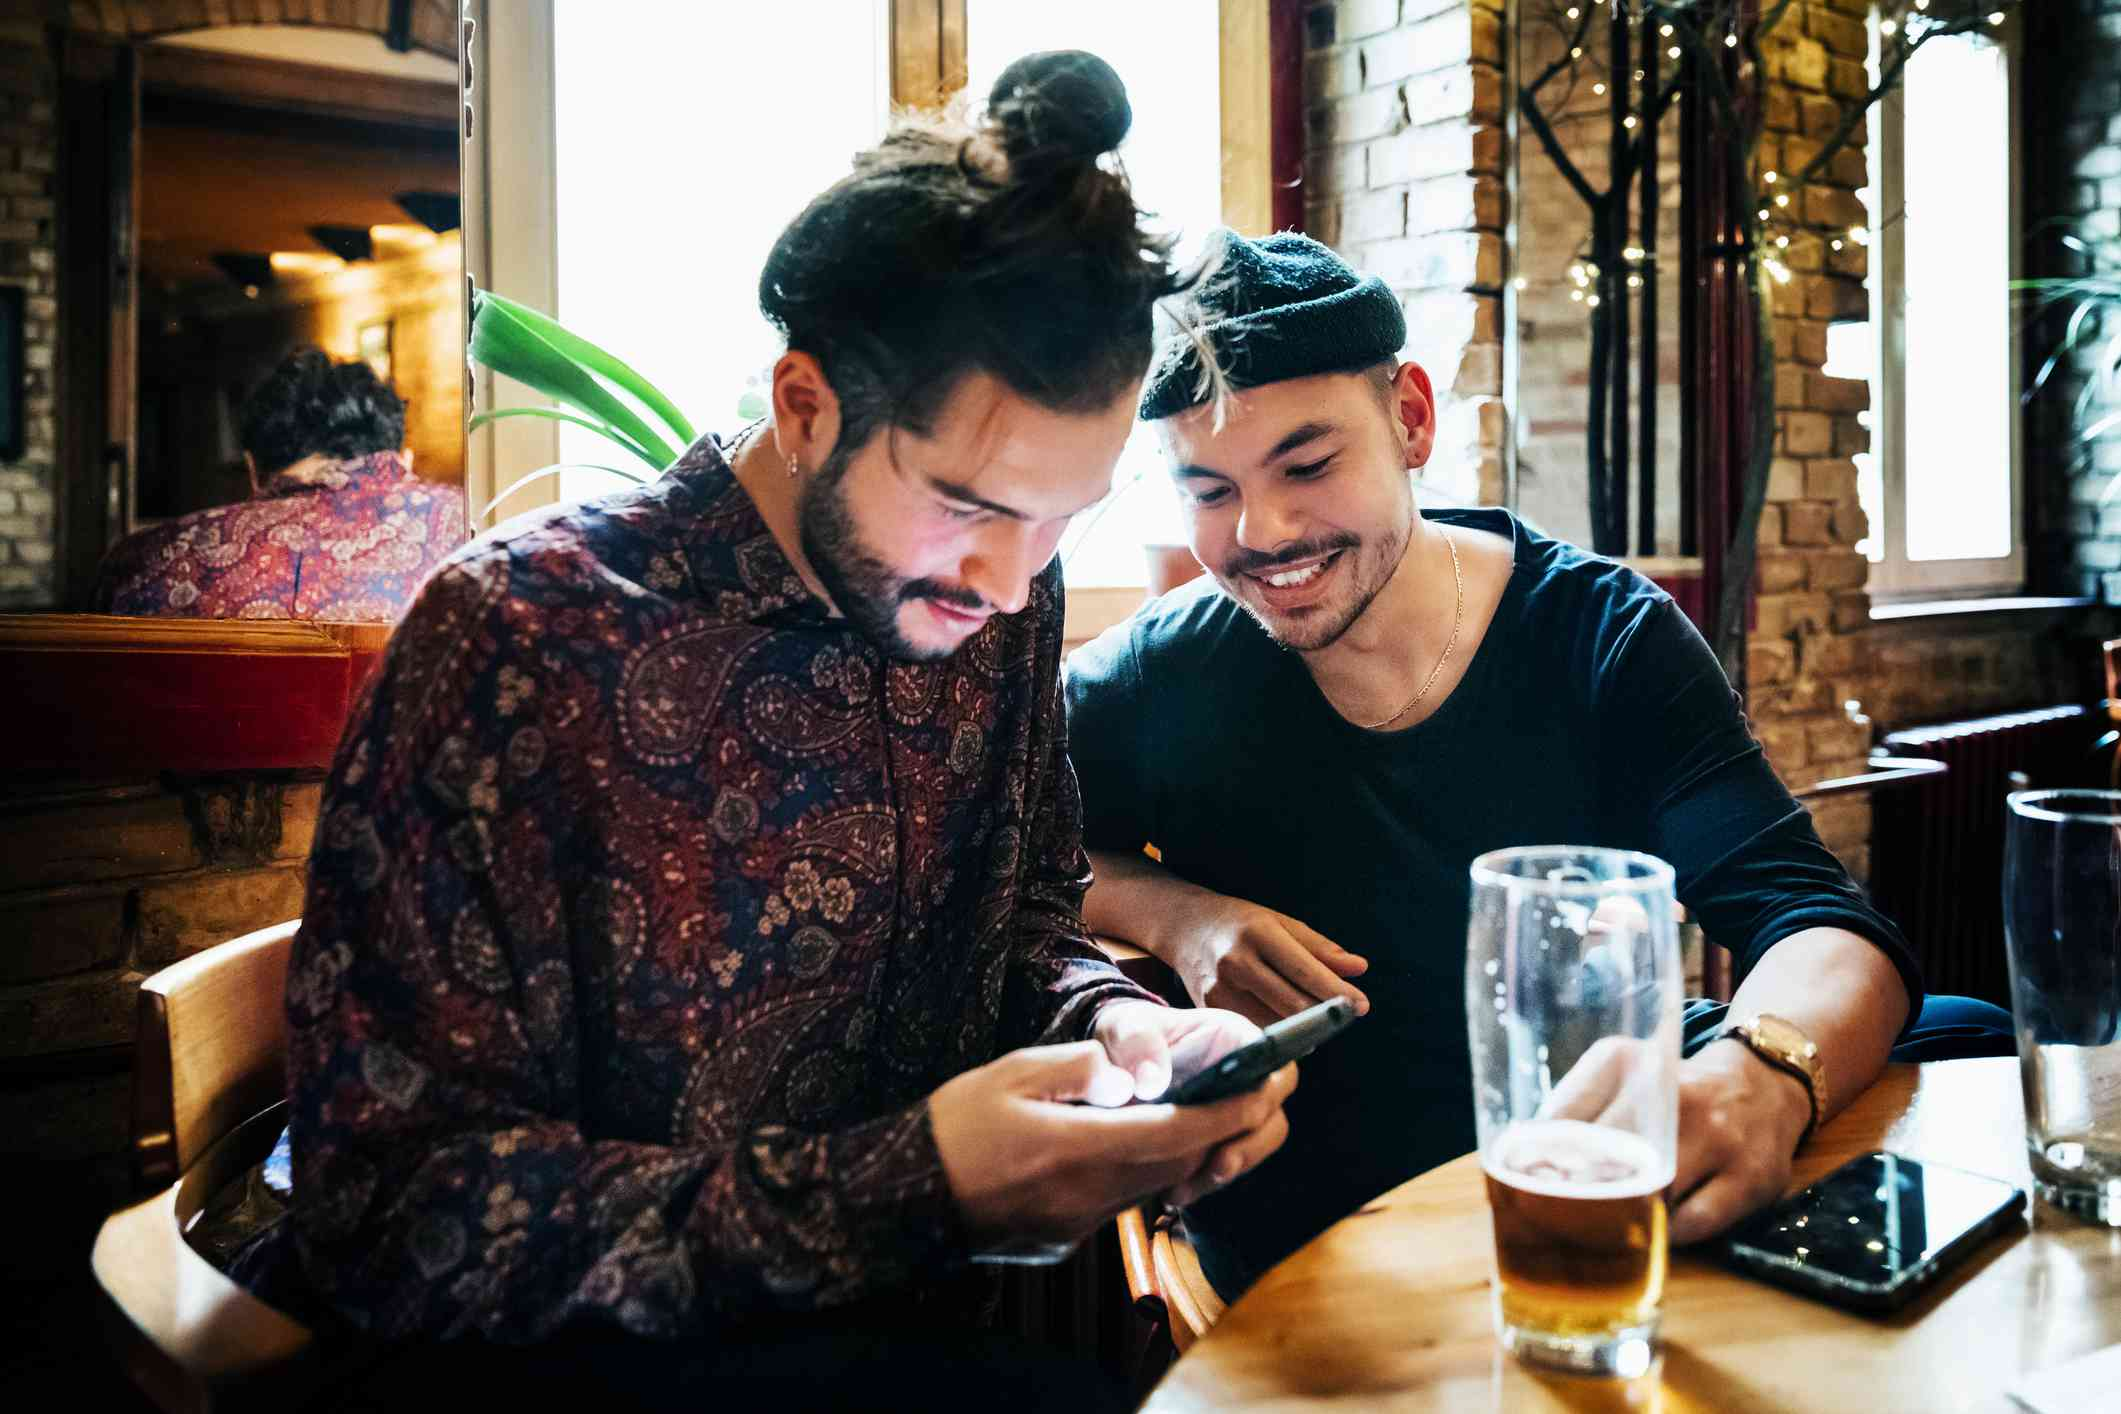 Conversation Starters for Texting That Go Beyond